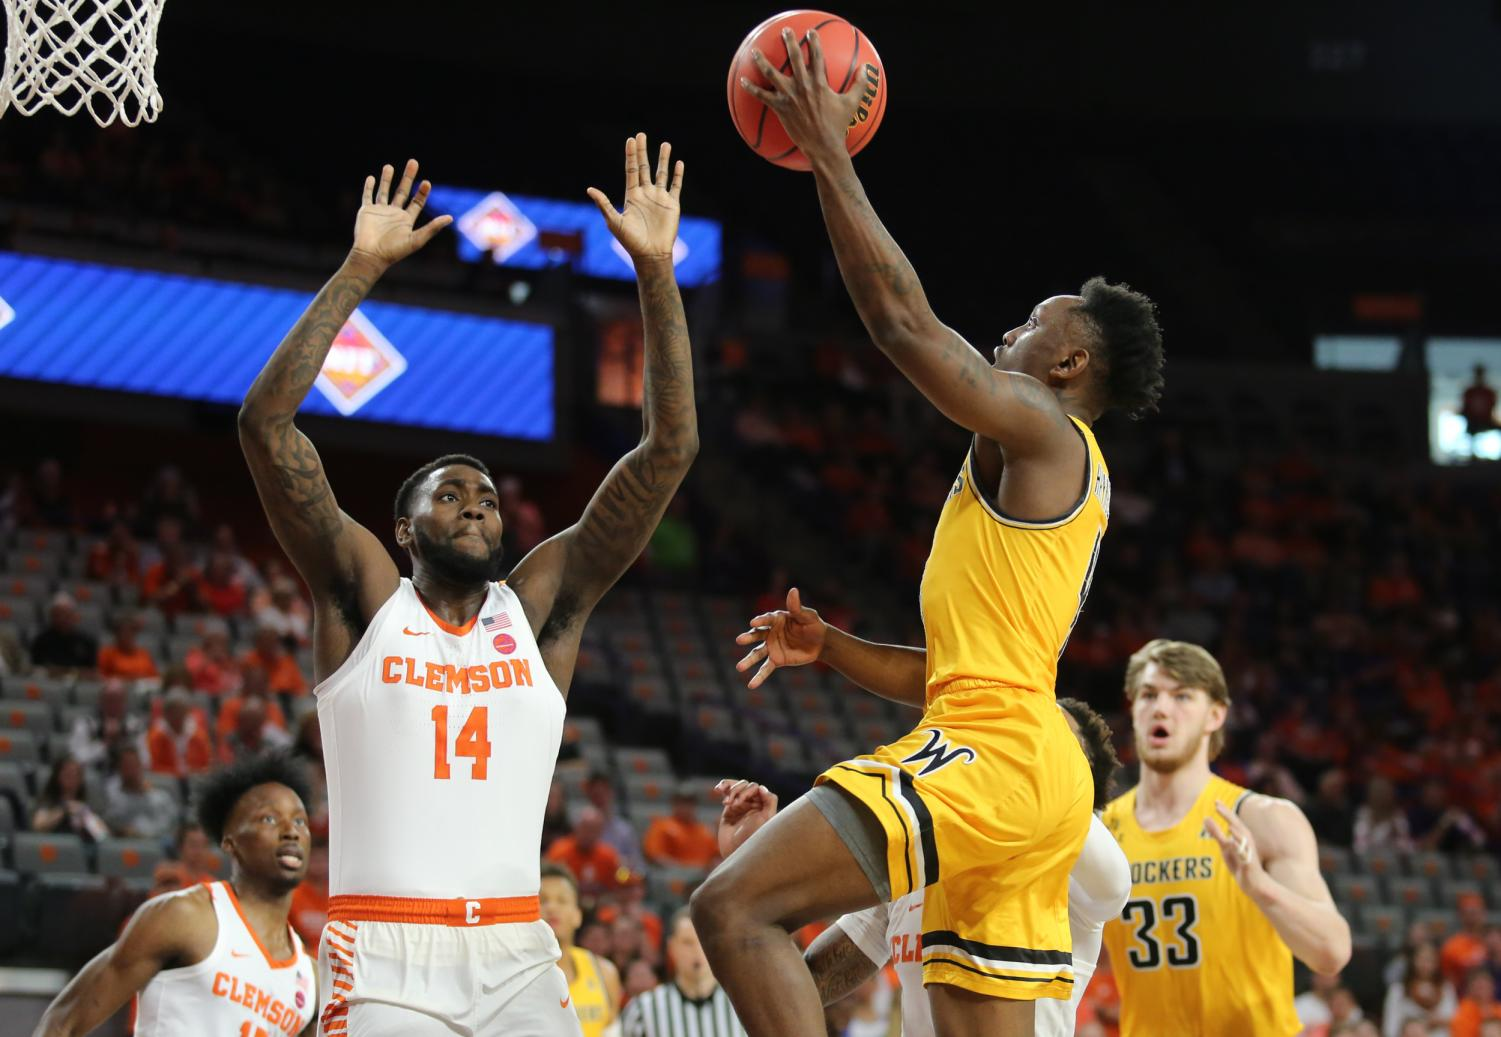 Samajae Haynes-Jones hit a late 3-pointer to advance Wichita State to the NIT quarterfinals. The Shockers beat Clemson 63-55.